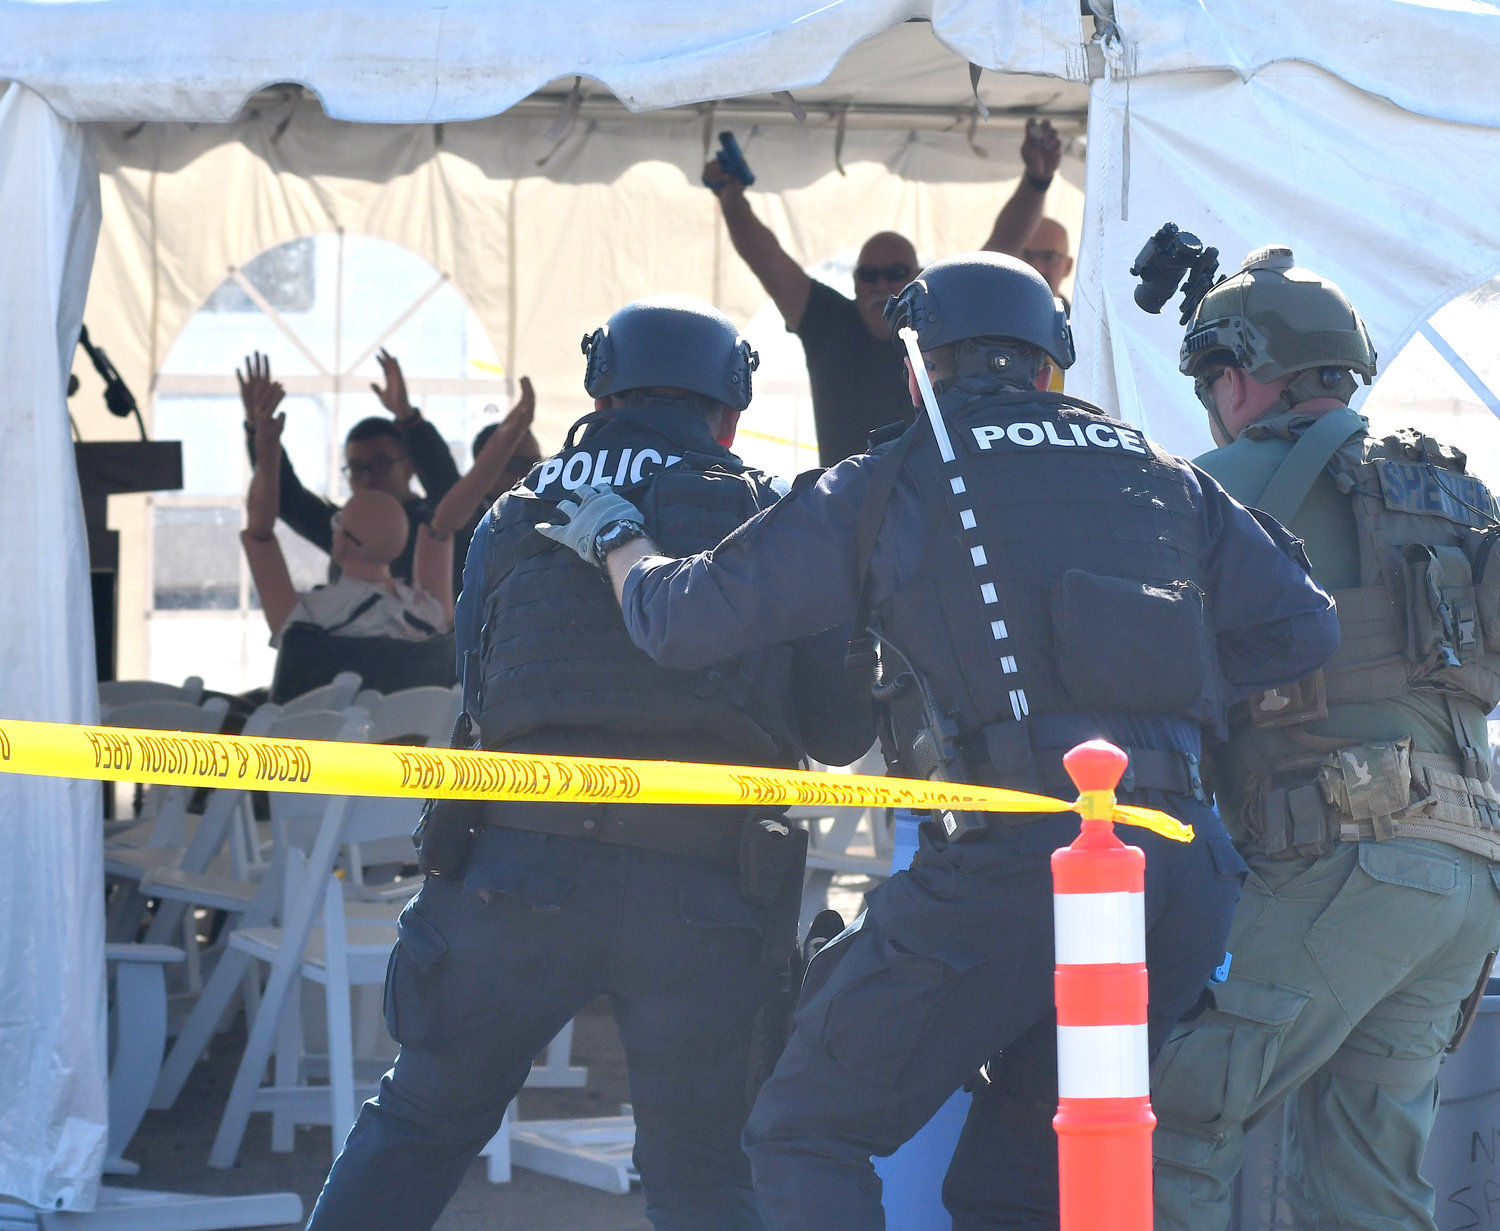 CHURCH IN SESSION — Several SWAT officers enter a church tent in Whitestown to confront a gunman who has been shooting attendees and broadcasting his attack live on the internet. This was one of several training scenarios during the Excelsior Challenge this week.